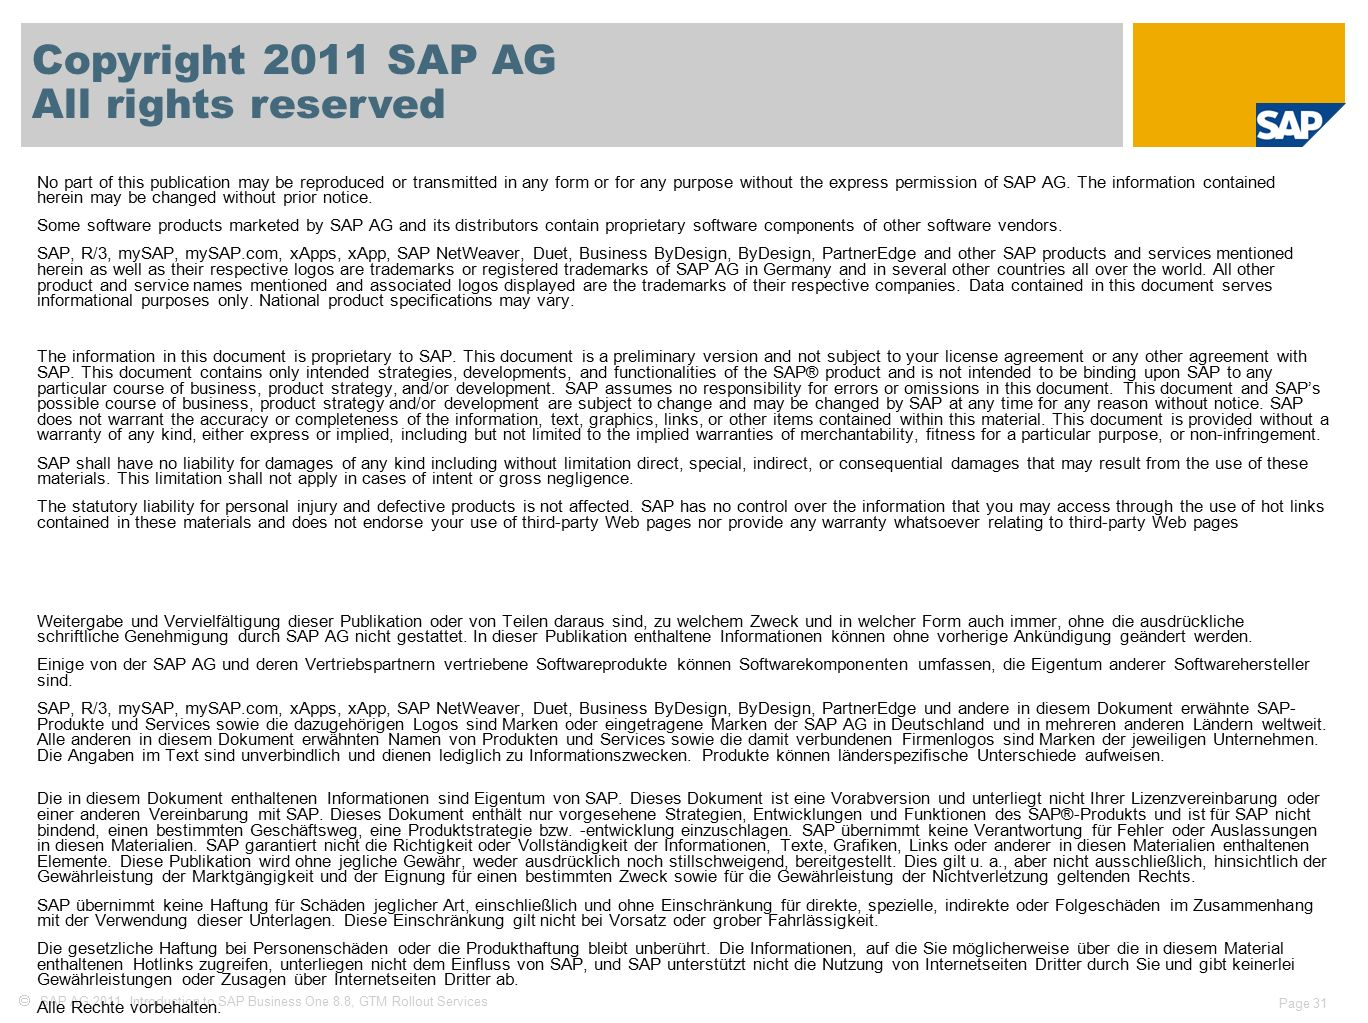  SAP AG 2011, Introduction to SAP Business One 8.8, GTM Rollout Services Page 31 Copyright 2011 SAP AG All rights reserved No part of this publication may be reproduced or transmitted in any form or for any purpose without the express permission of SAP AG.